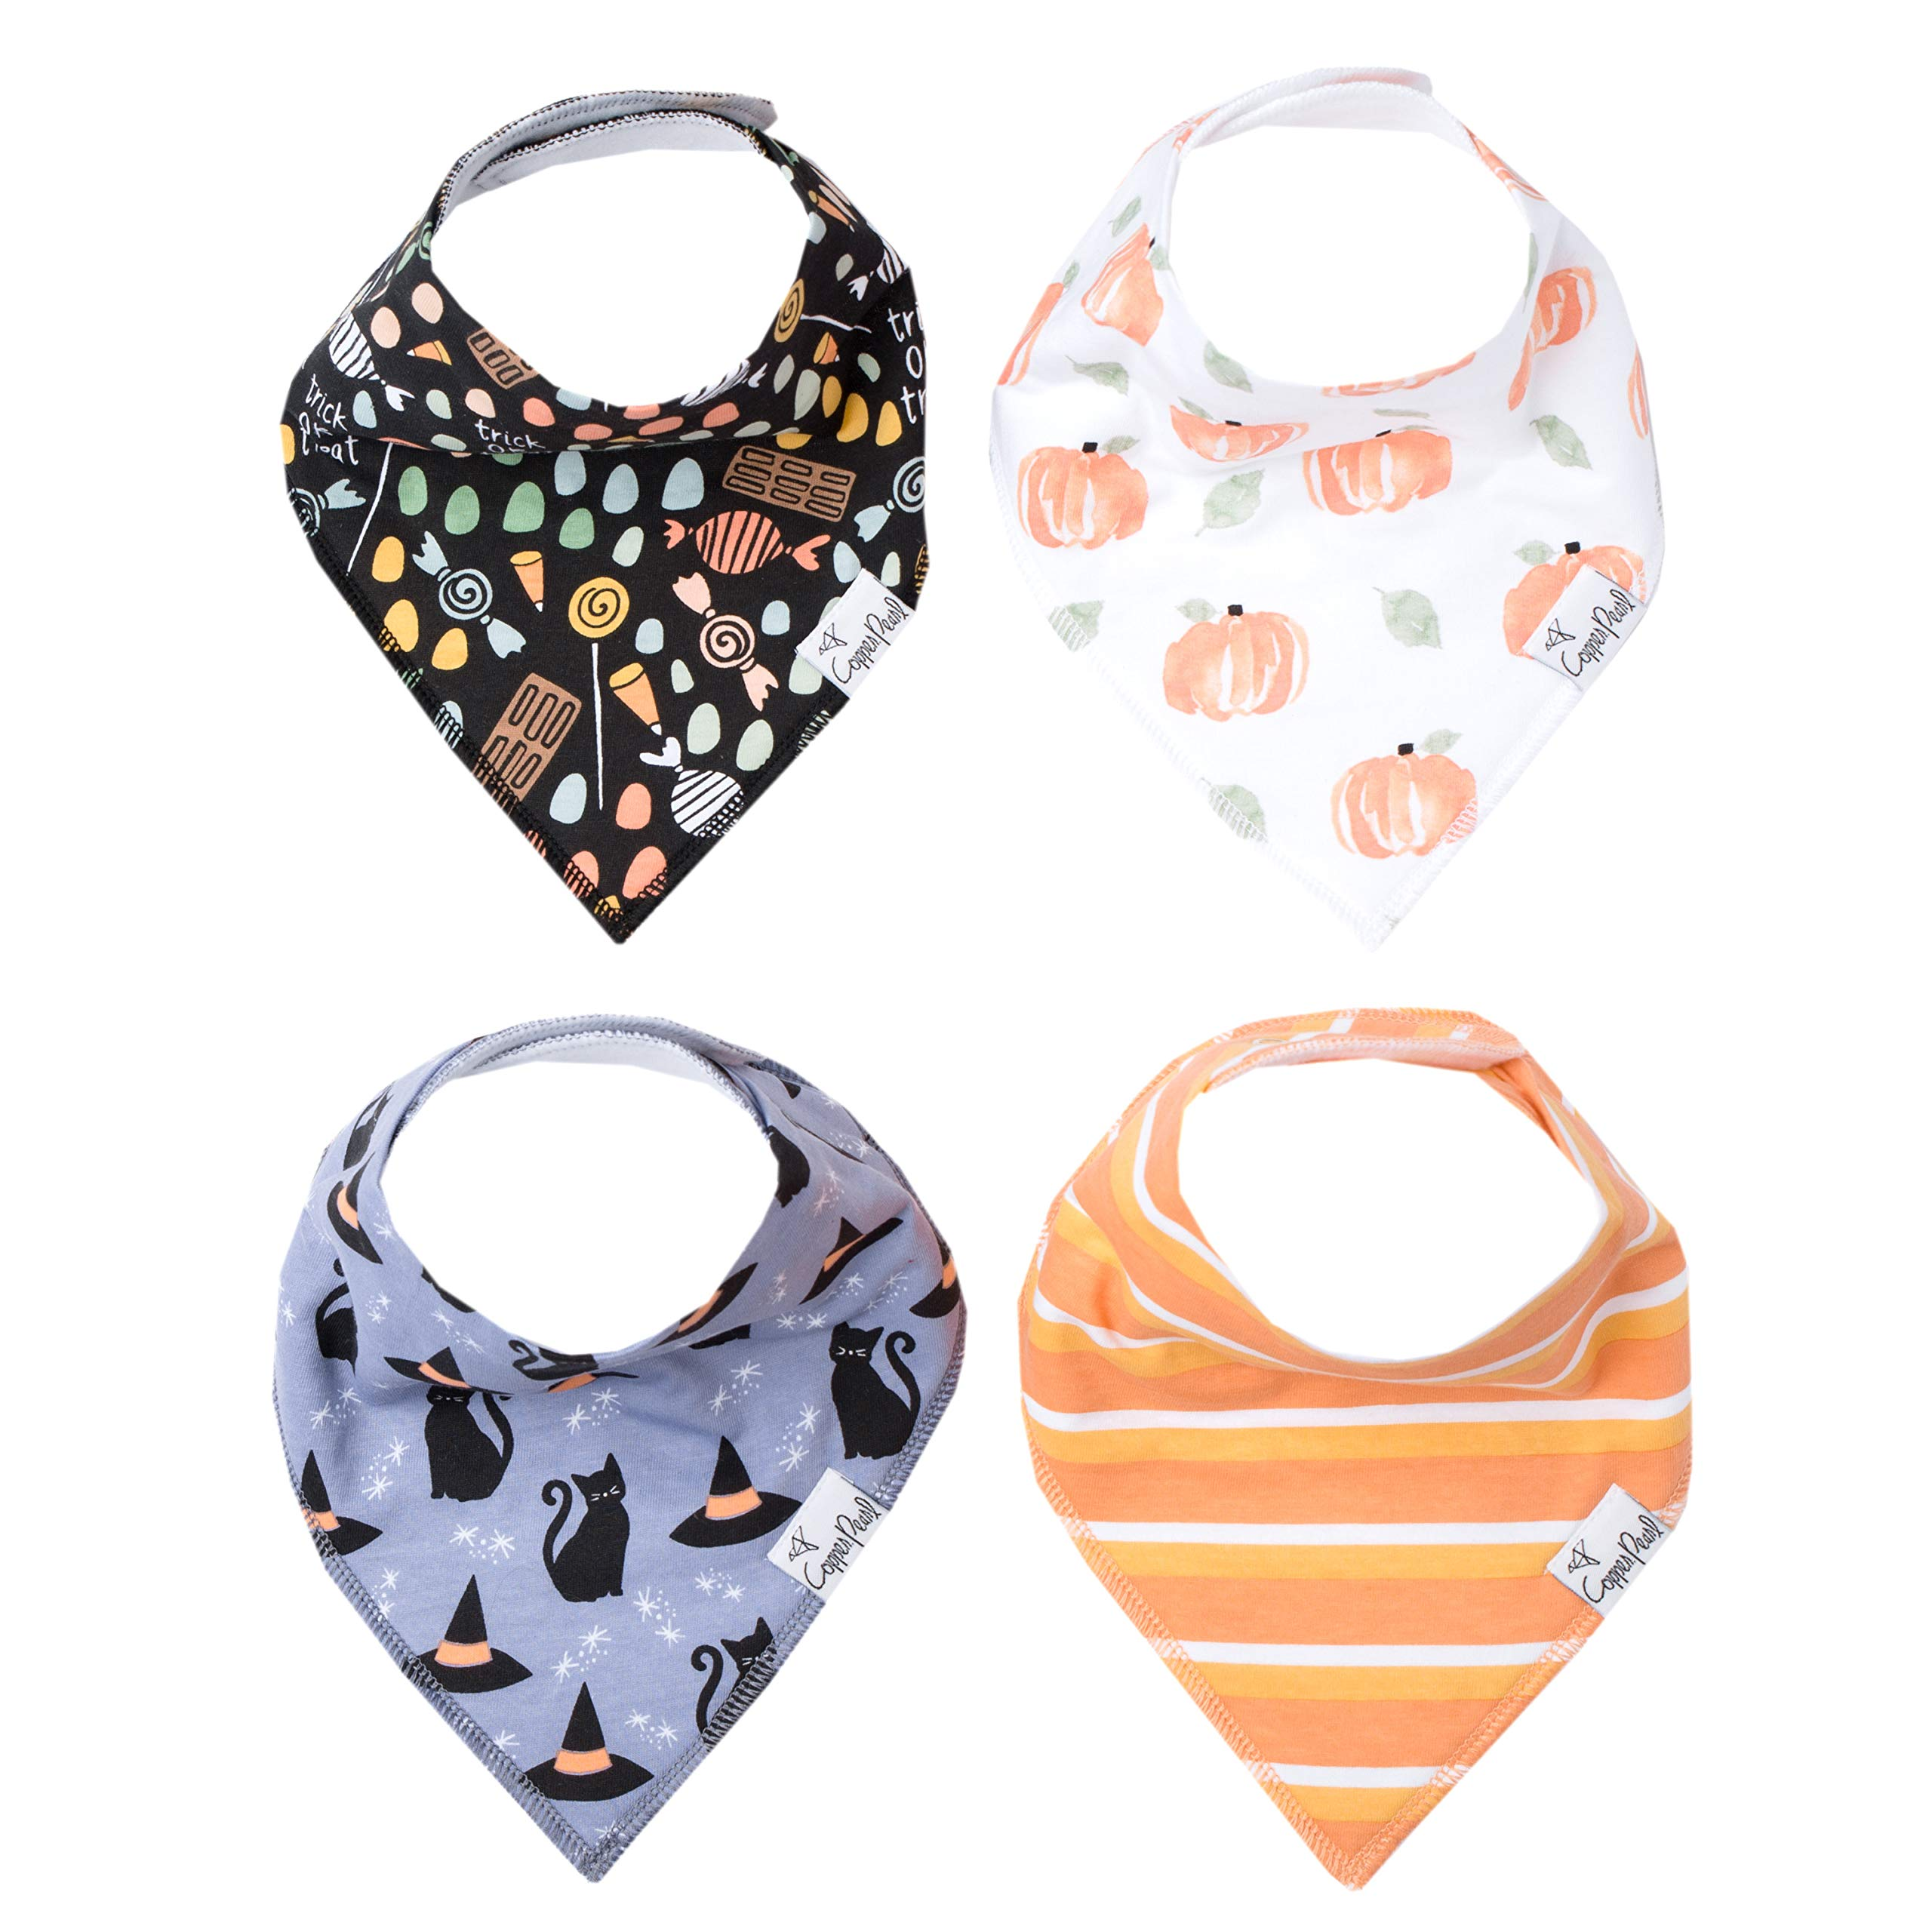 Baby Bandana Drool Bibs for Drooling and Teething 4 Pack Gift Set ''Wicked'' by Copper Pearl by Copper Pearl